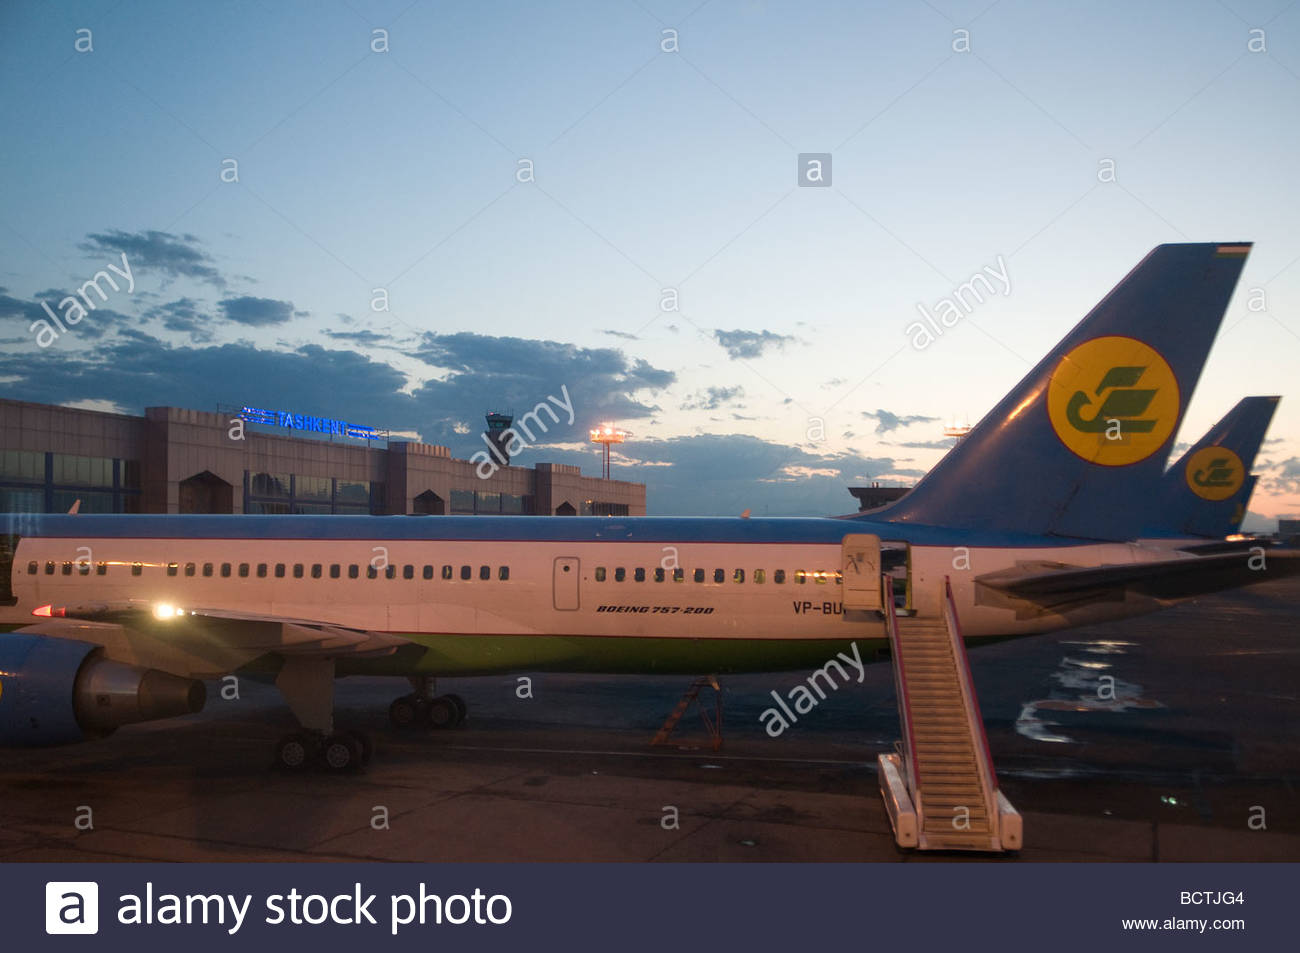 Two airplanes of National Air Company Uzbekistan Airways stand on the tarmac at Tashkent International Airport Uzbekistan - Stock Image